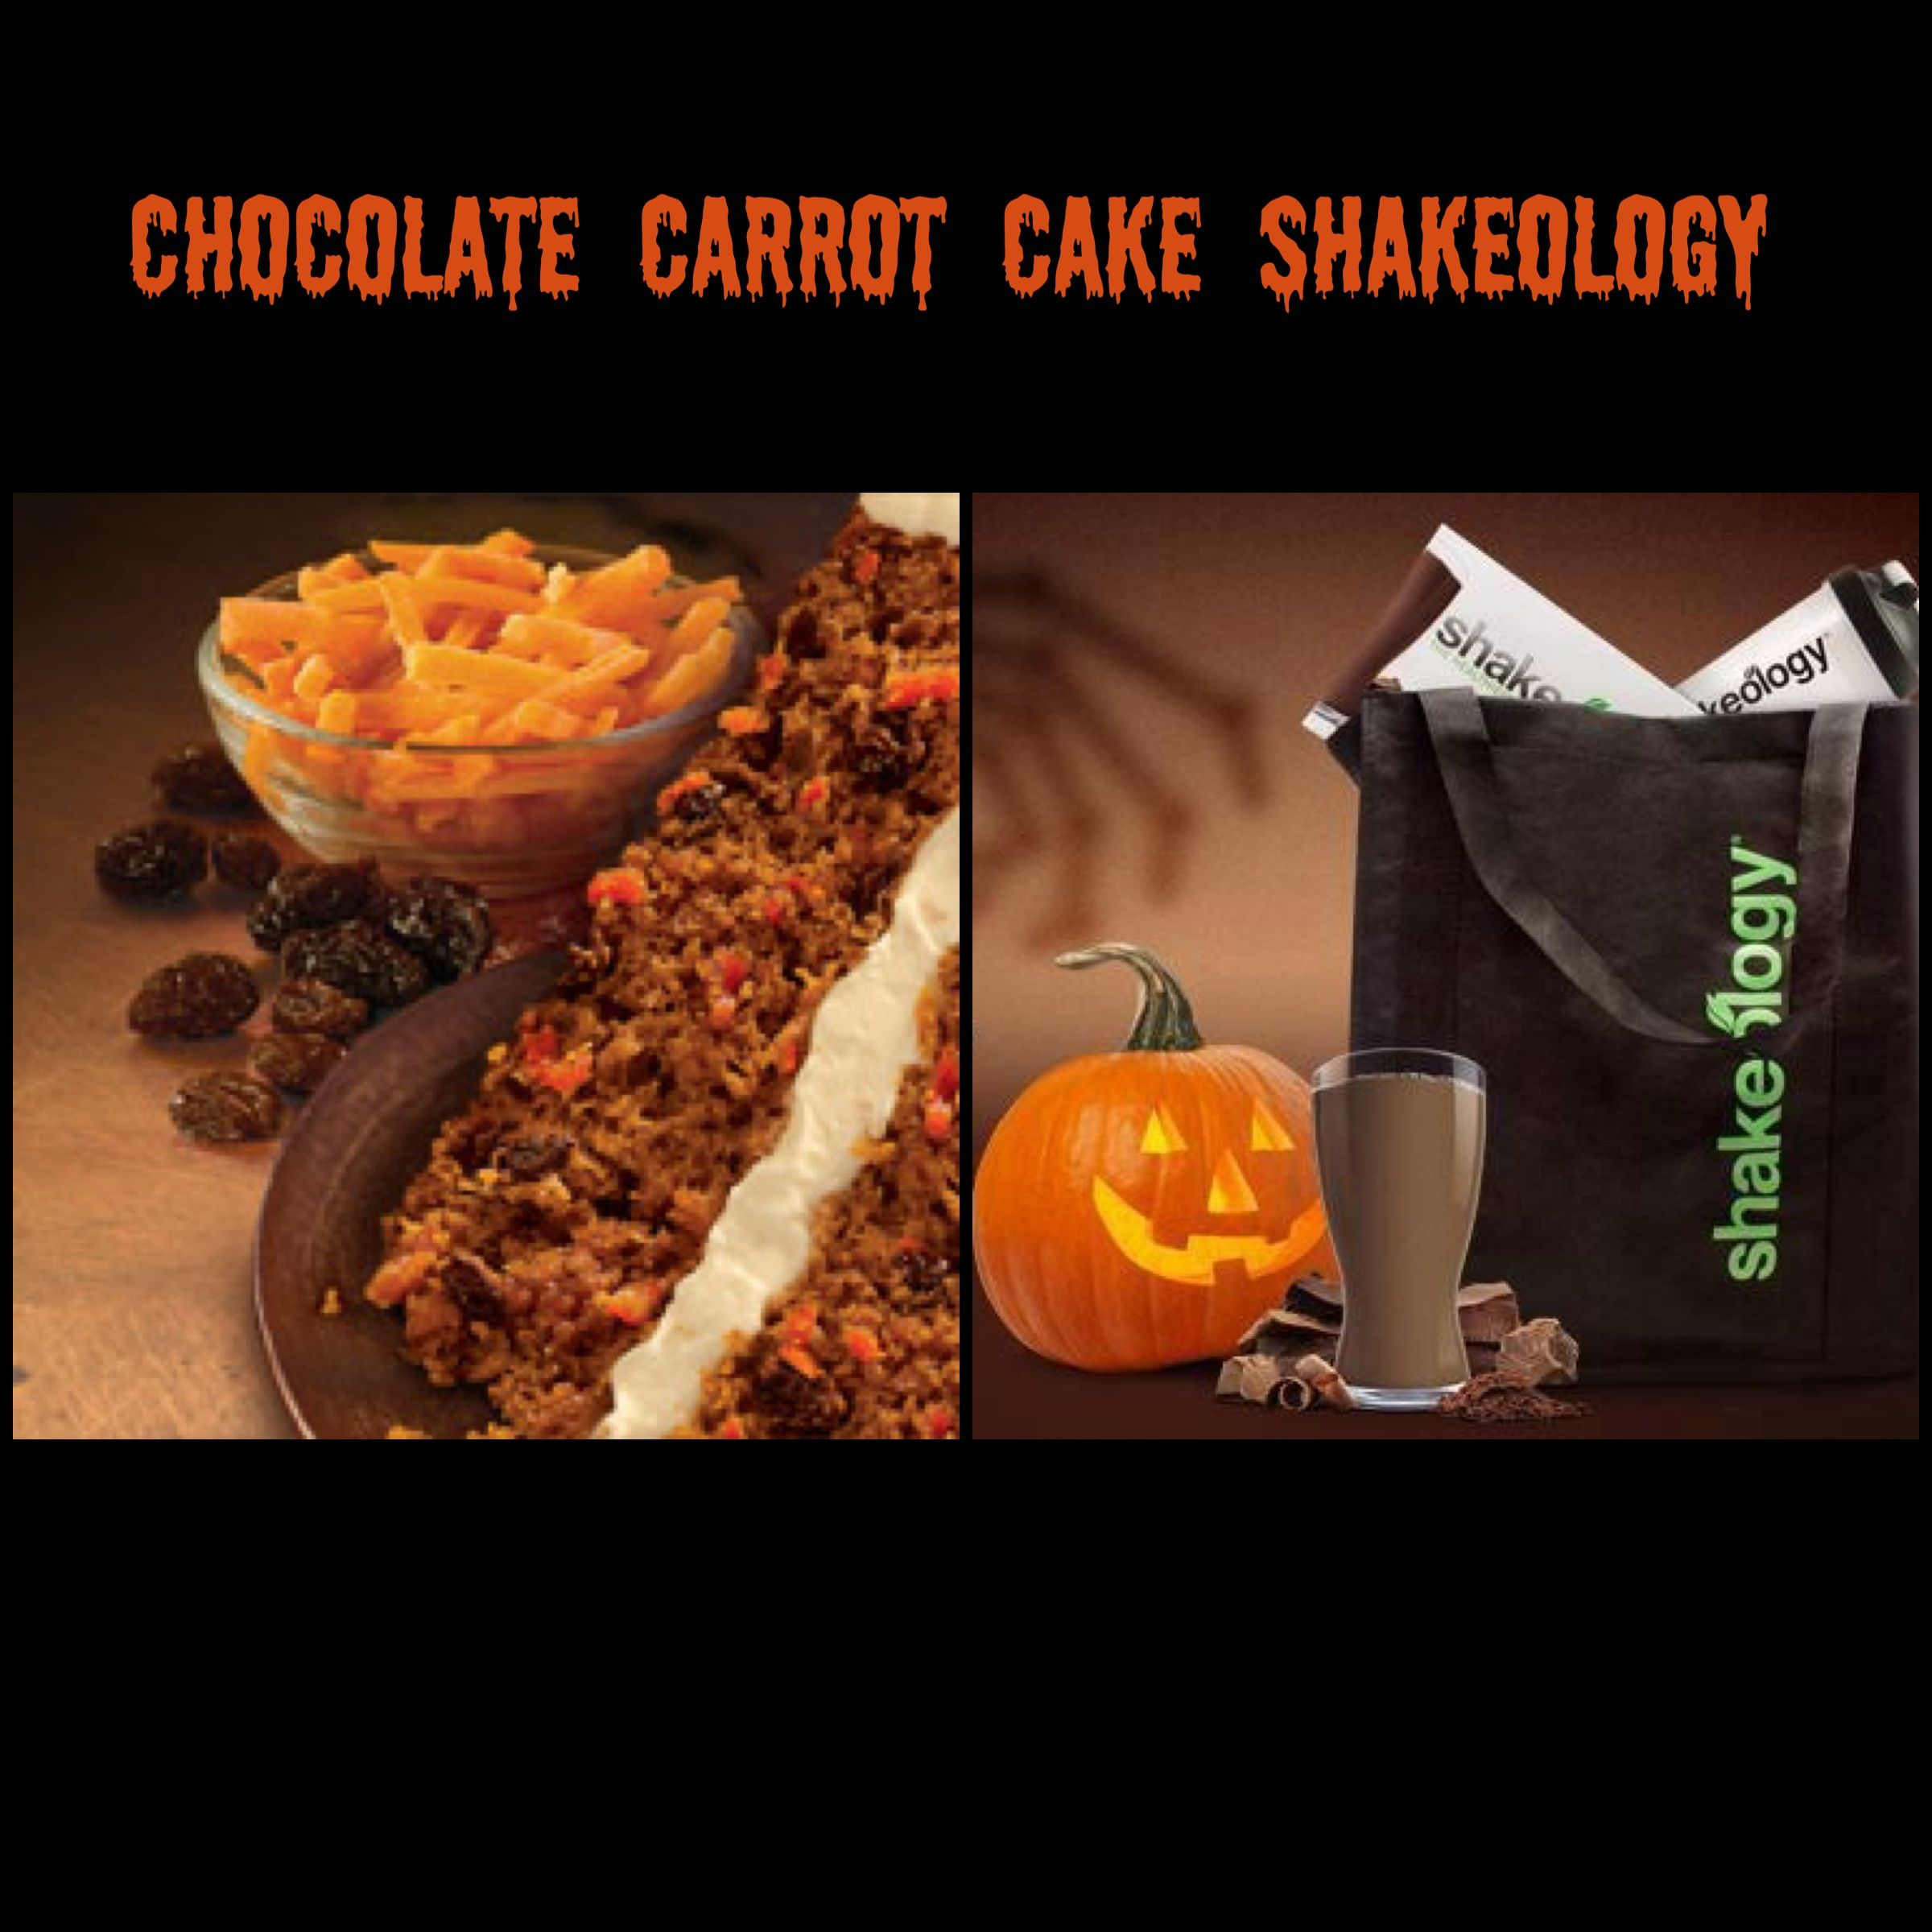 Chocolate Carrot Cake Shakeology! 1 scoop Chocolate Vegan Shakeology 1 cup almond milk 4 oz steamed baby carrots 1/2 cup frozen pineapple 1/2 tsp vanilla 1/2 tsp cinnamon